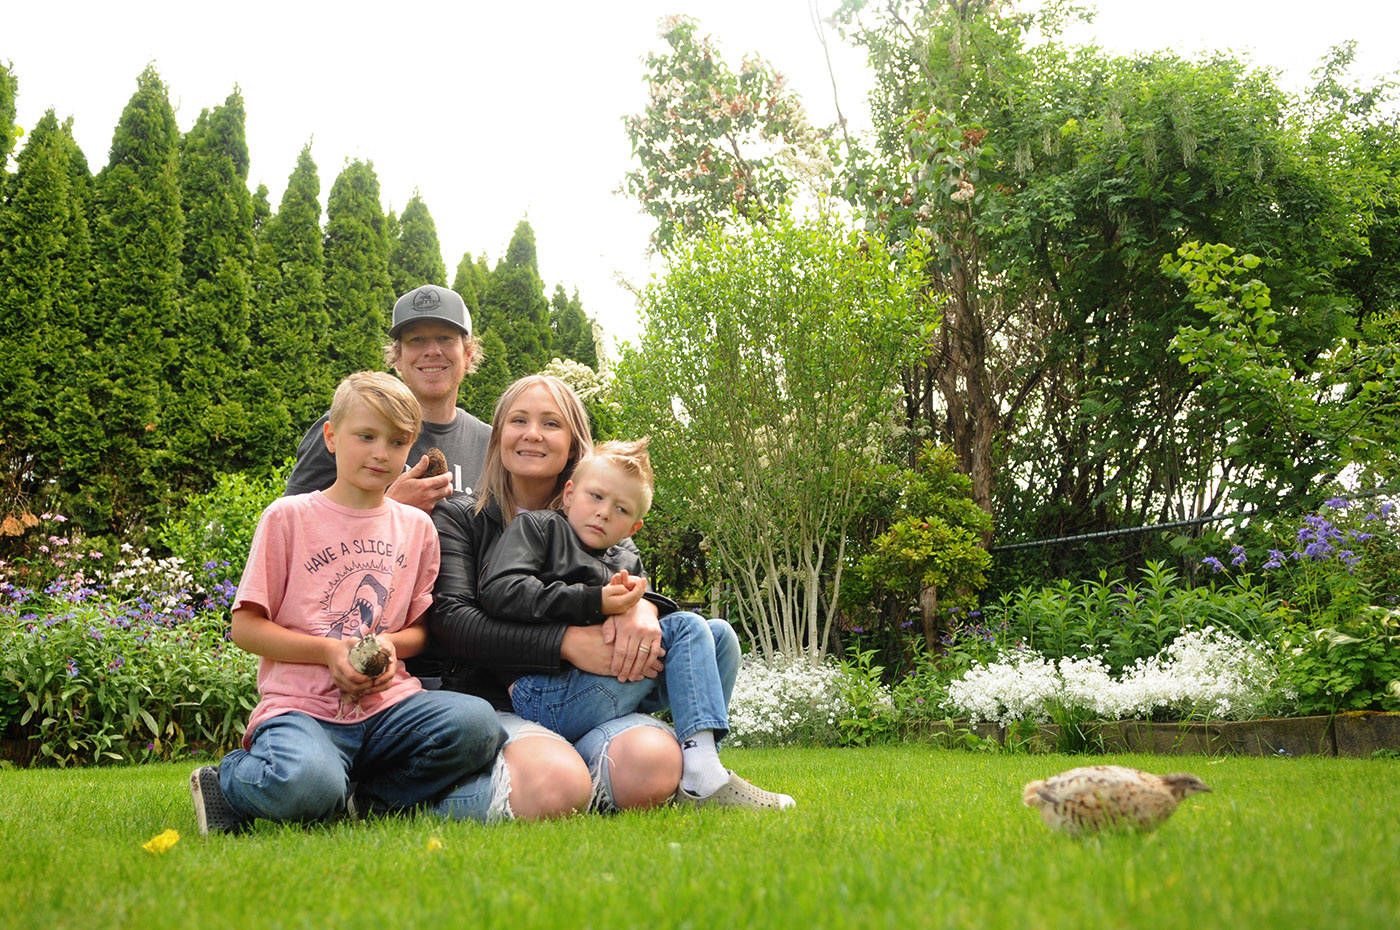 The Meredith family (Nick, Nicole, 10-year-old Lukas and eight-year-old Bowen) pose with three of their pet quail in their backyard in Chilliwack on Friday, May 28, 2021. The family was ordered to move their backyard quail or face a fine. (Jenna Hauck/ Chilliwack Progress)